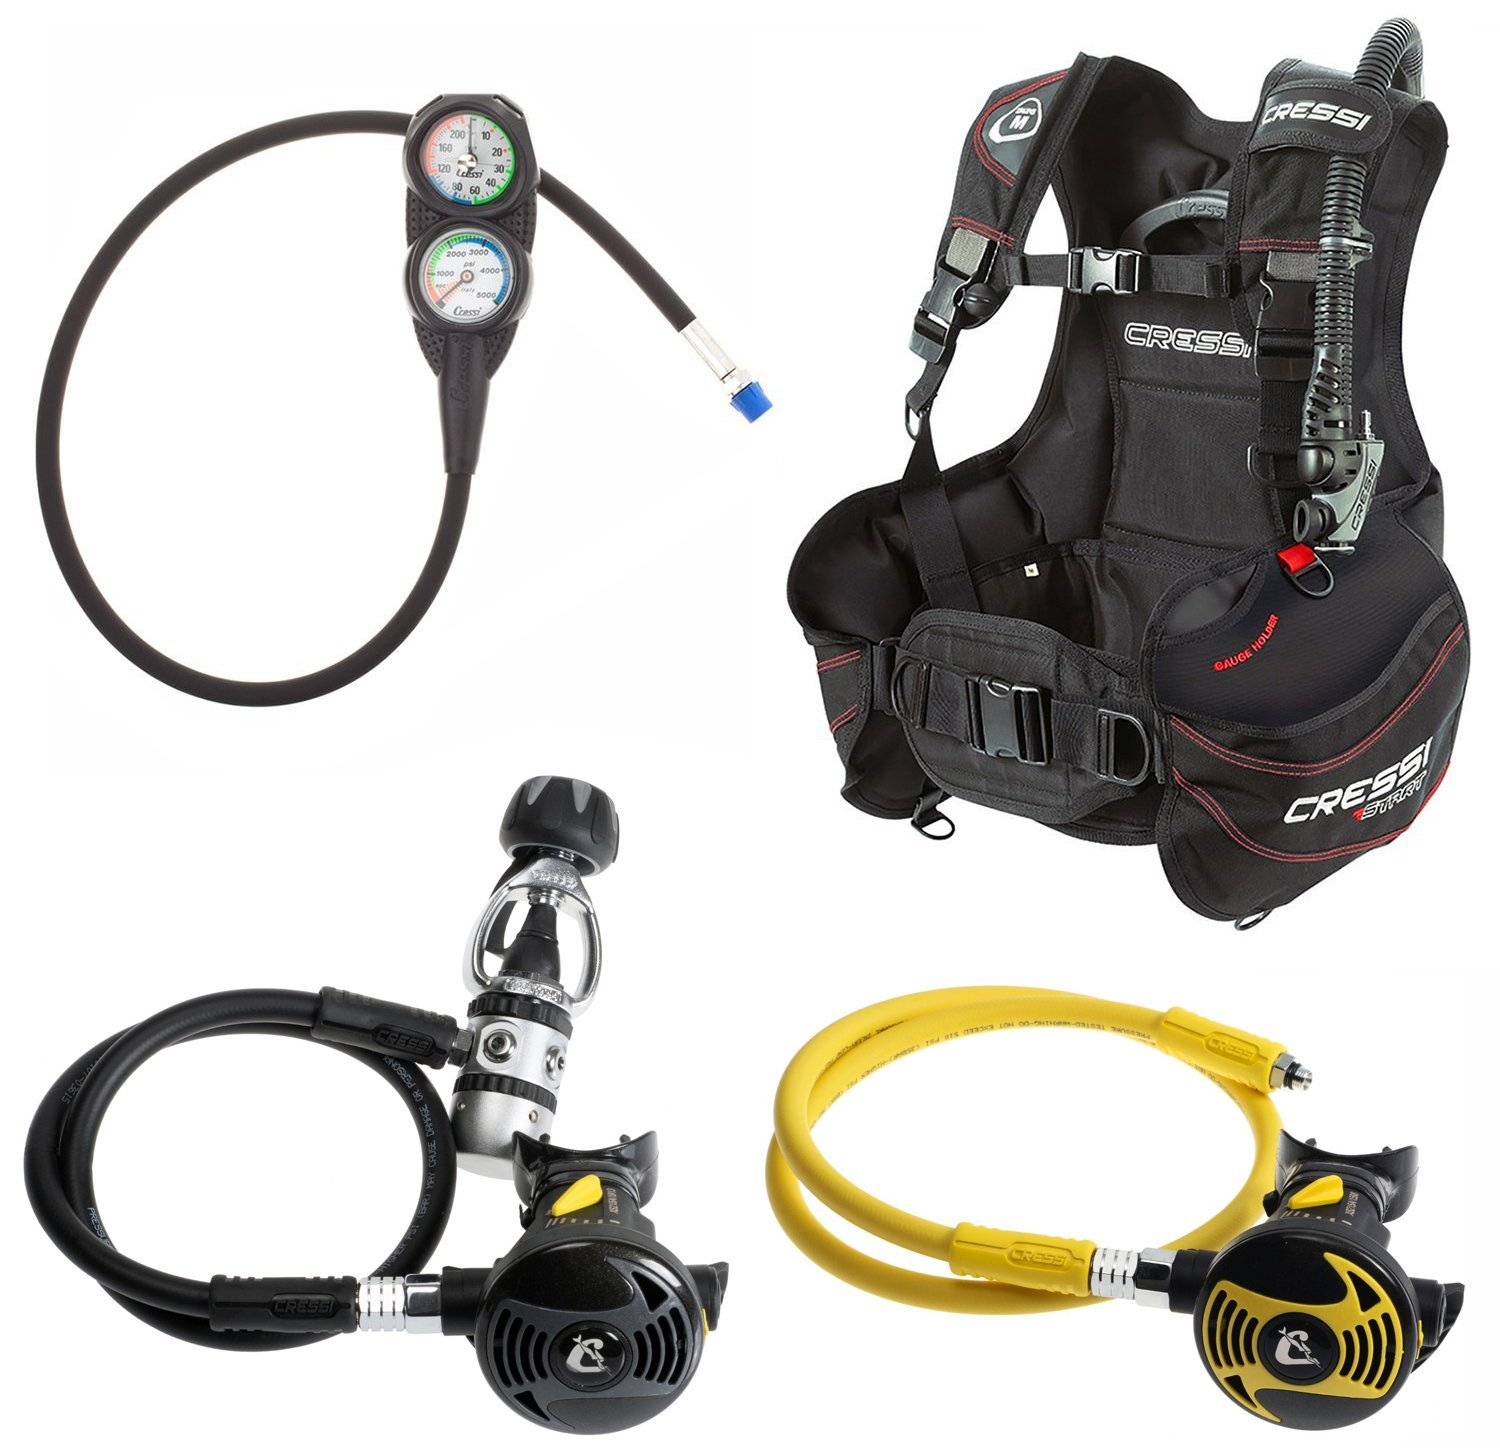 Cressi Sub Start Equipment for Scuba Diving, made in Italy by Cressi